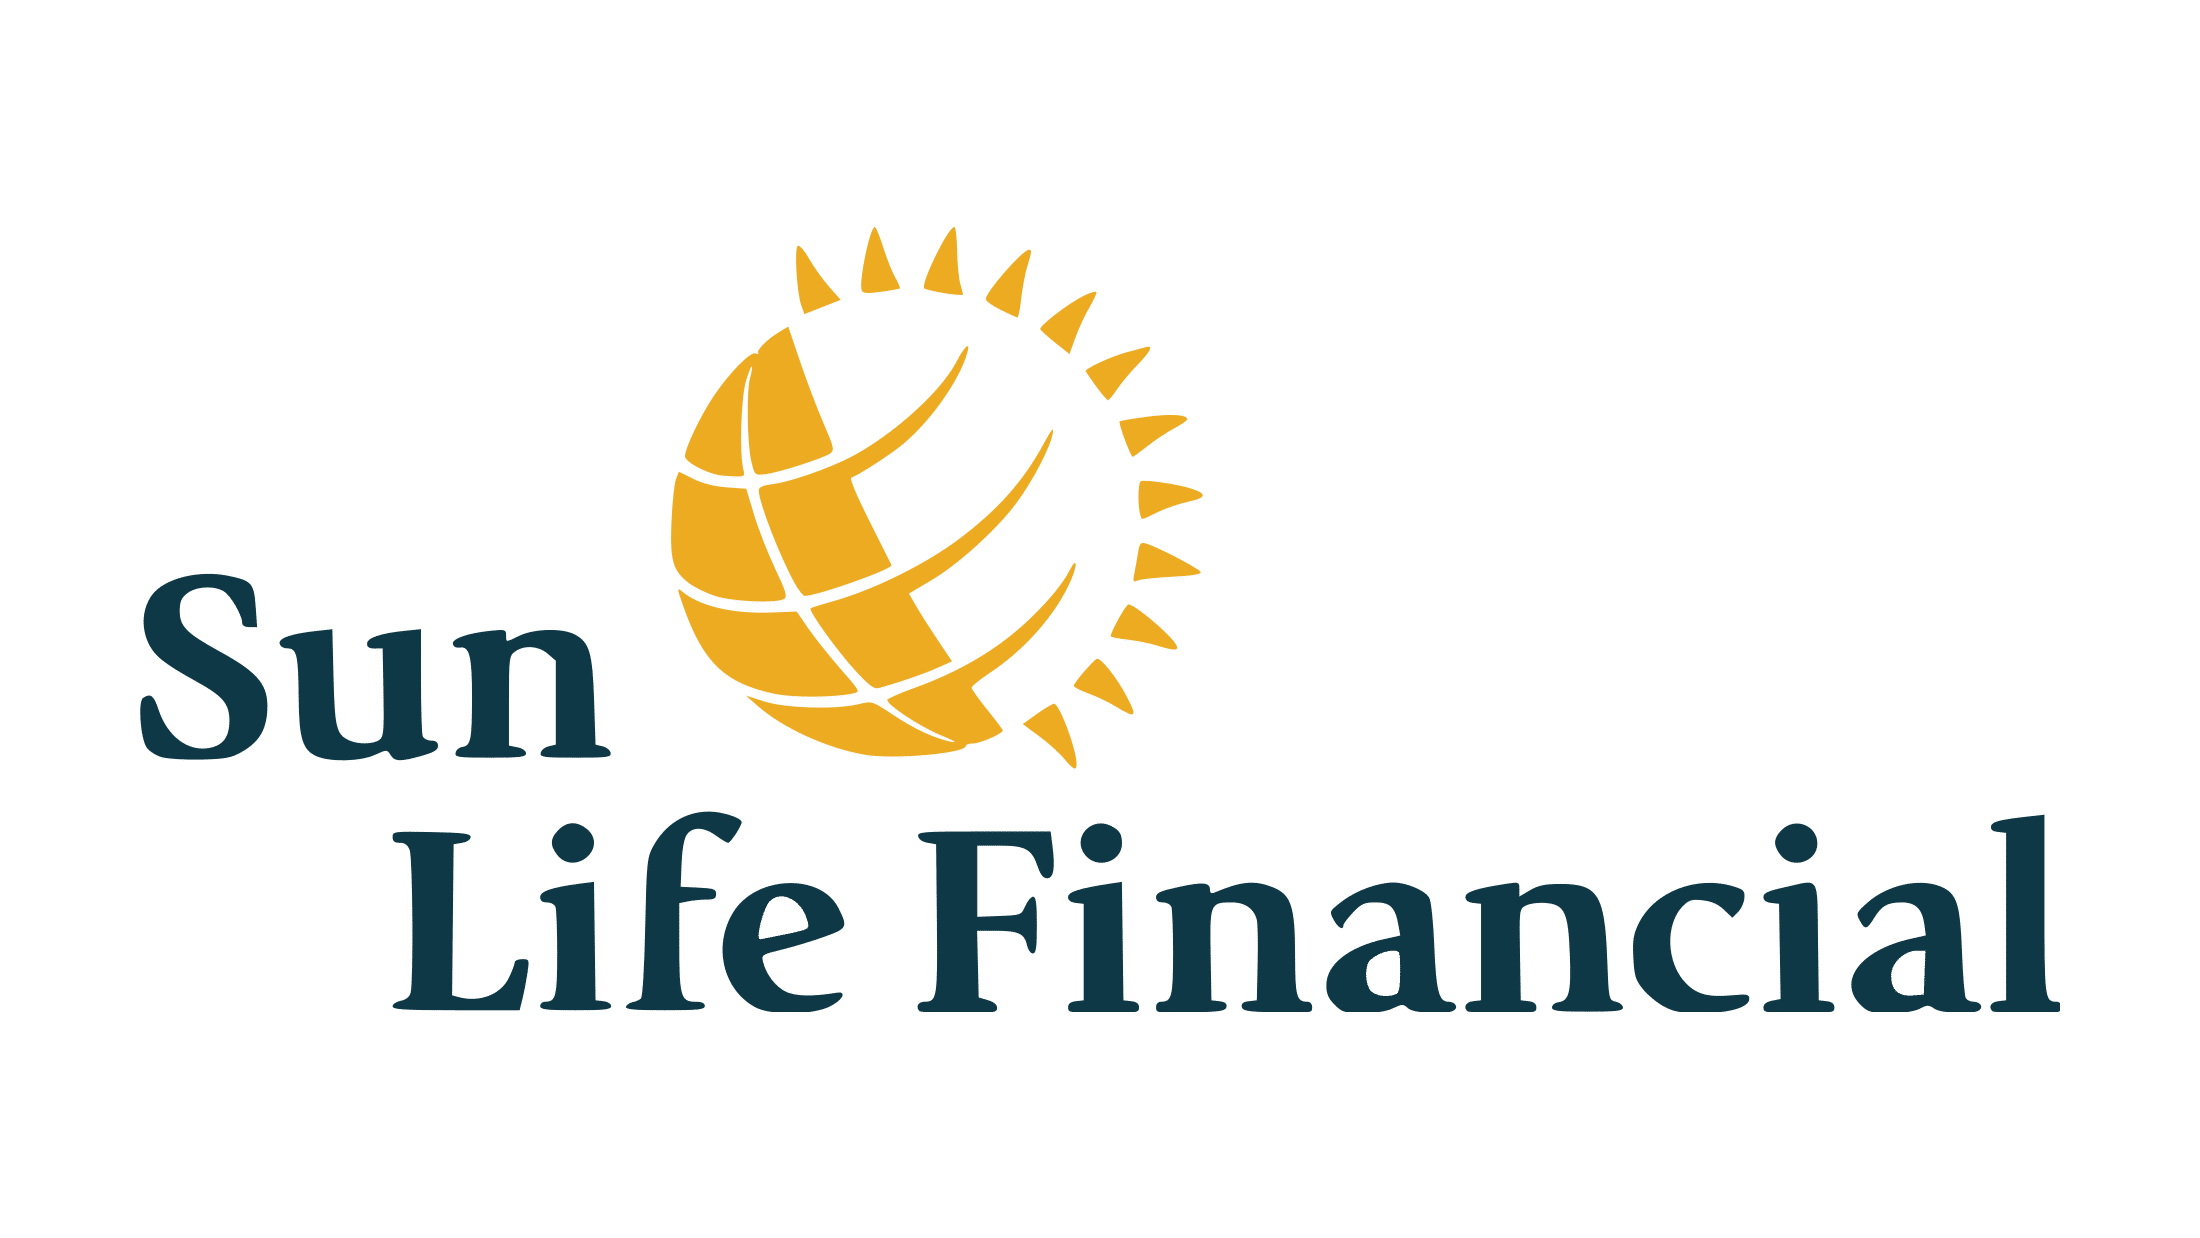 Sun_Life_Financial_logo.png